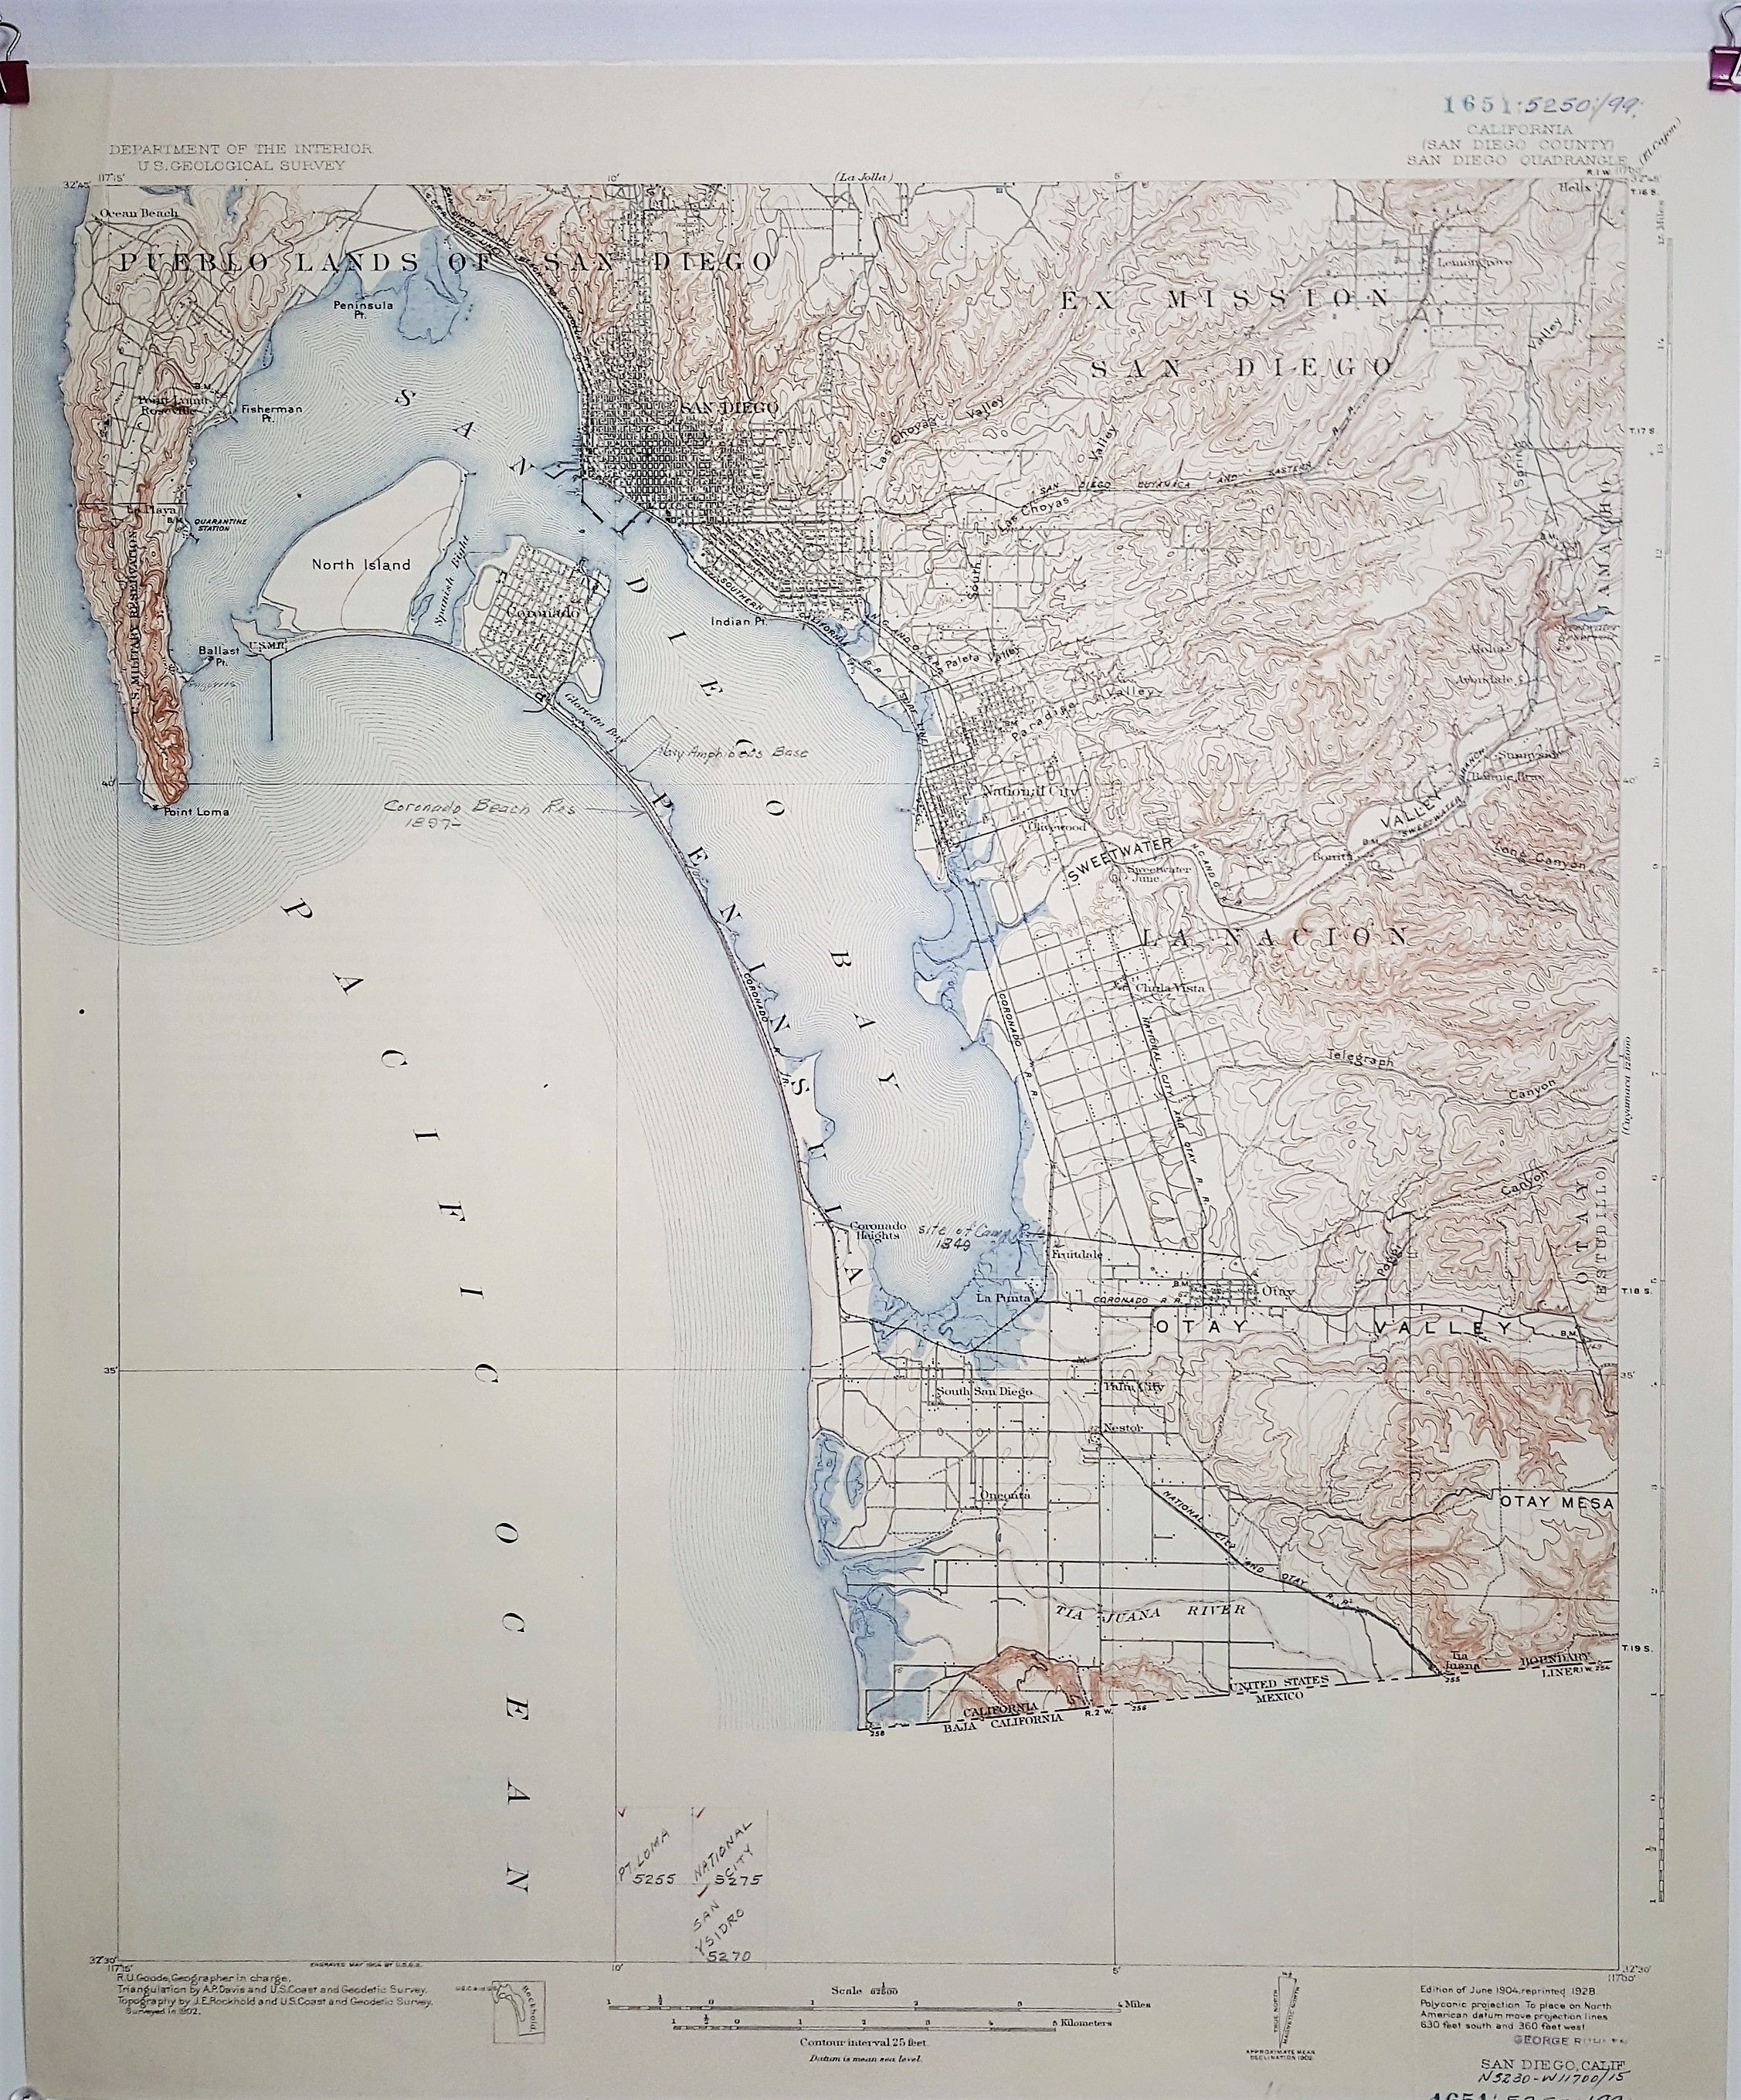 HD Decor Images » A vintage double sided topographic map of California  San Diego     A vintage double sided topographic map of California  San Diego County  San  Diego Quadrangle 1928 by Department of the Interior U S  Geological Survey  by